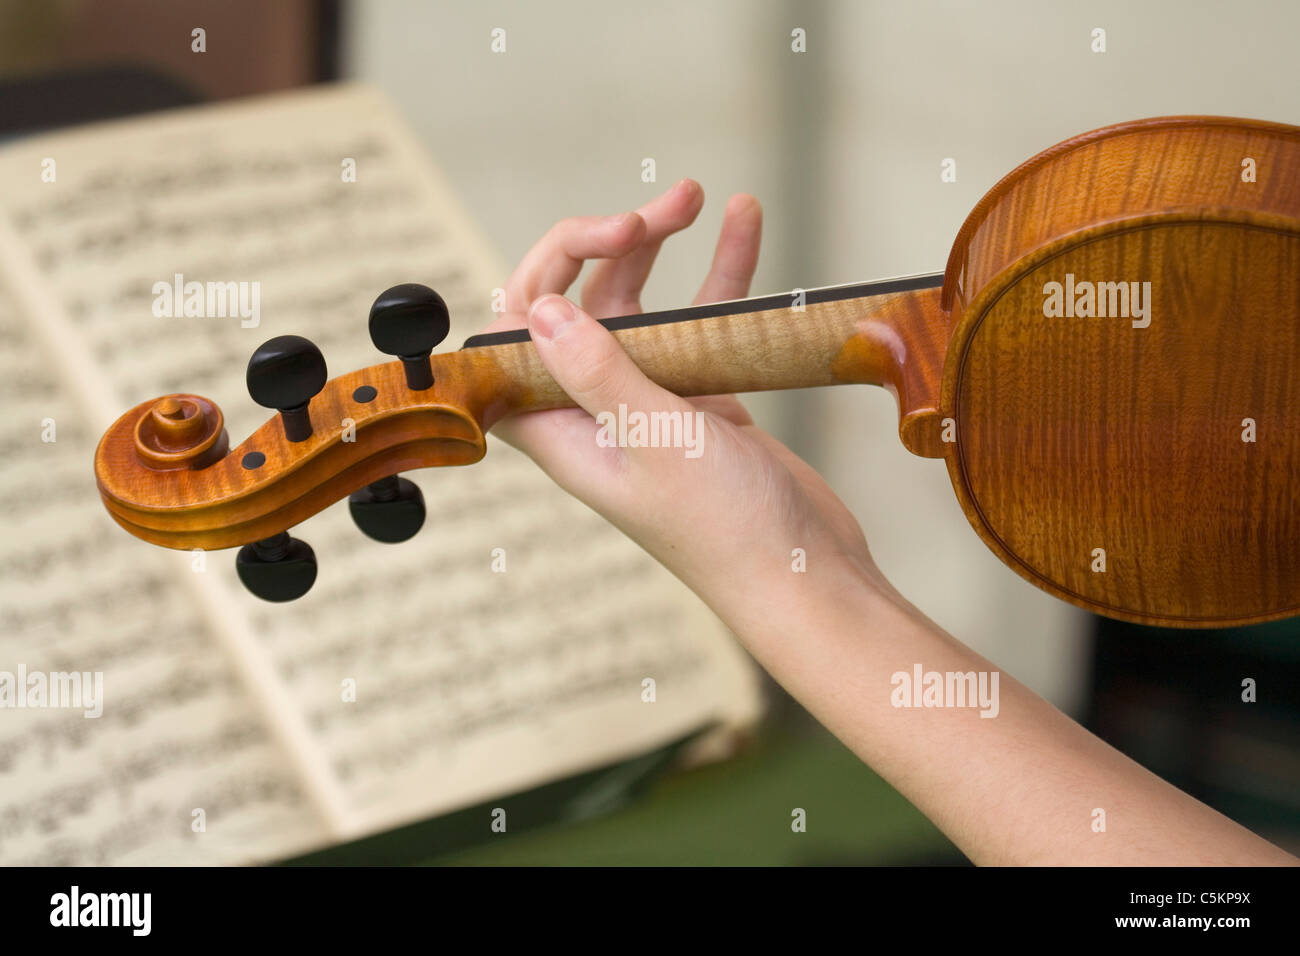 Left hand and arm of young woman playing a violin, printed musical score in background - Stock Image